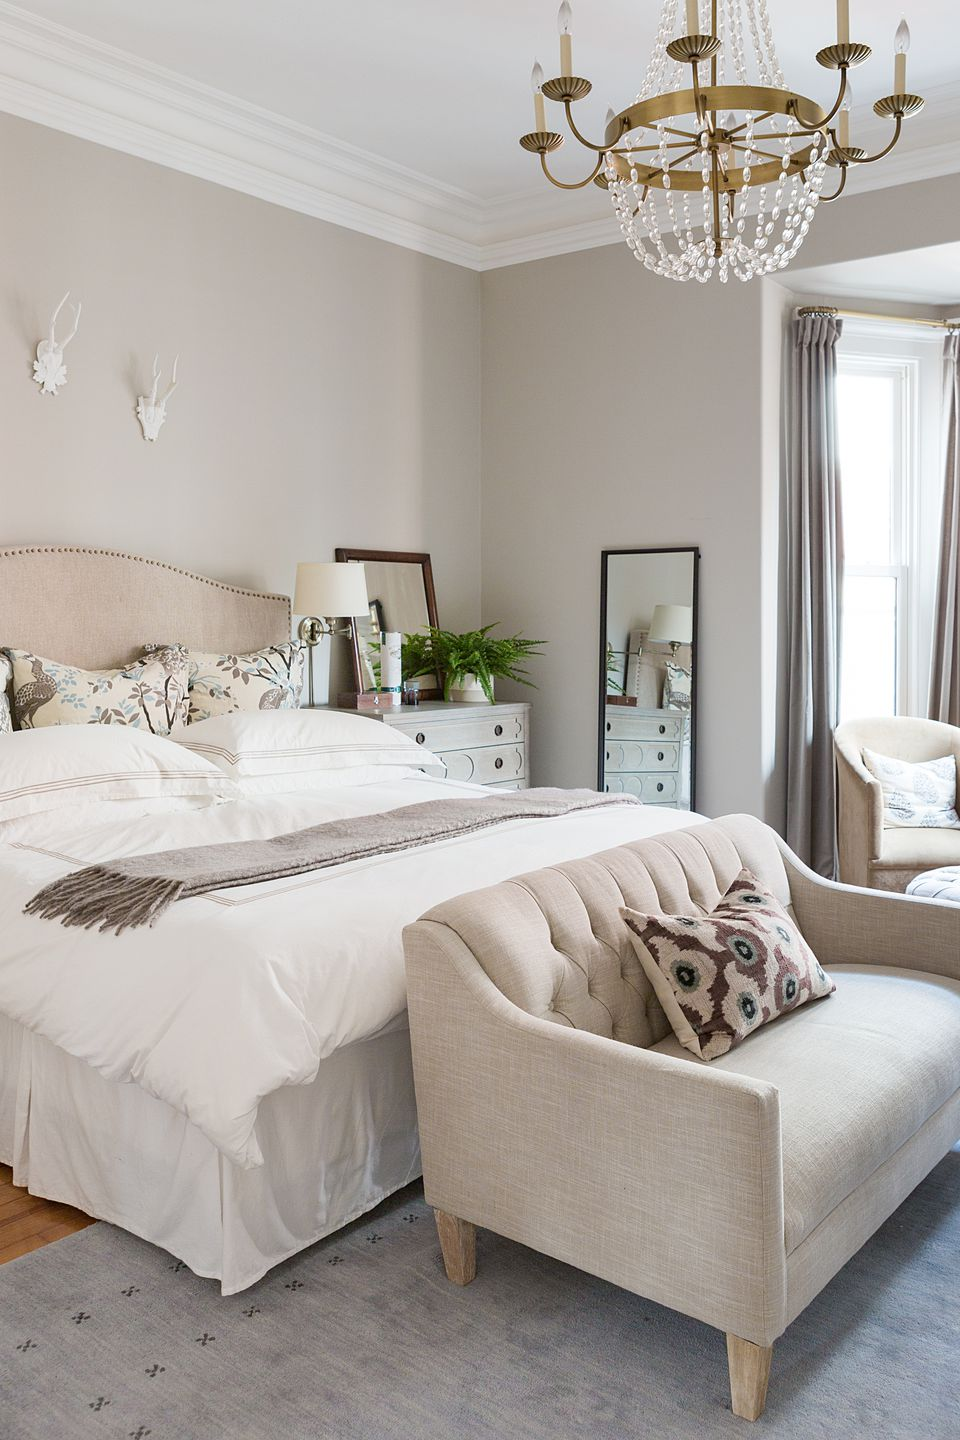 The transformation of the house began in the master bedroom, which the homeowners designated throughout the project as a sanctuary from the surrounding chaos. The small-scale settee is from Pottery Barn Kids.